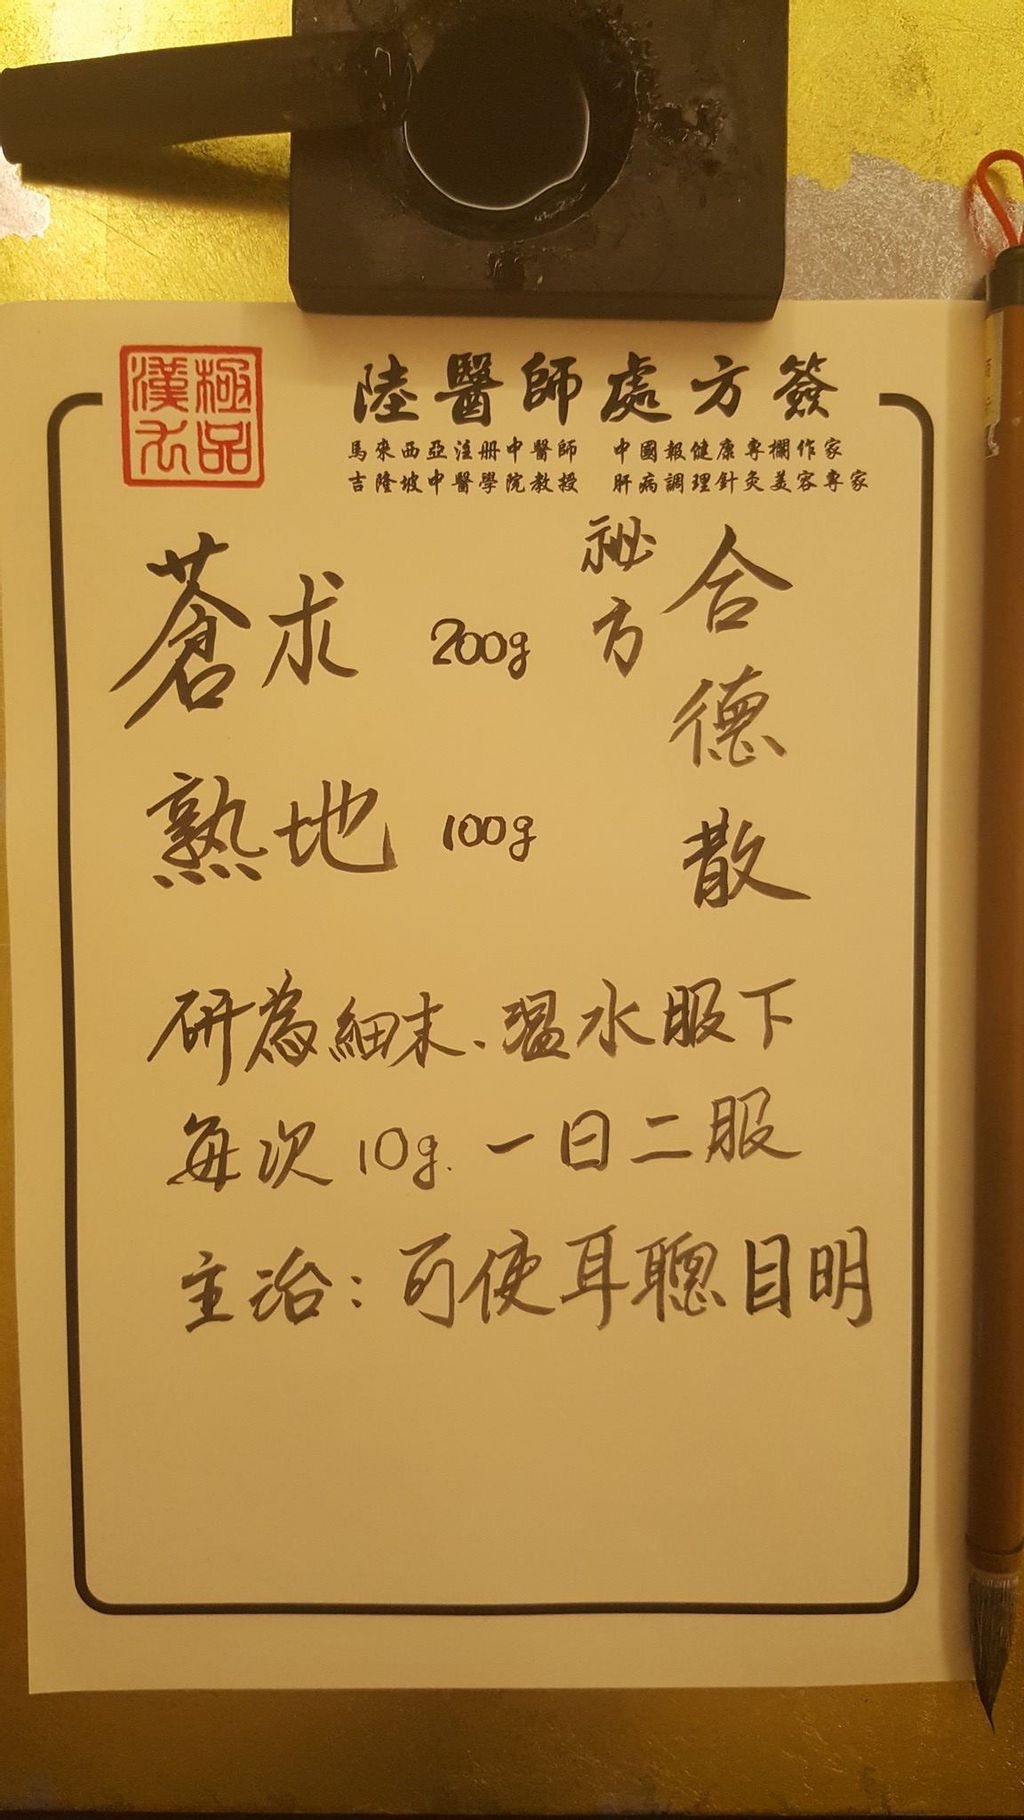 Recipe for Anti-aging【合德散】